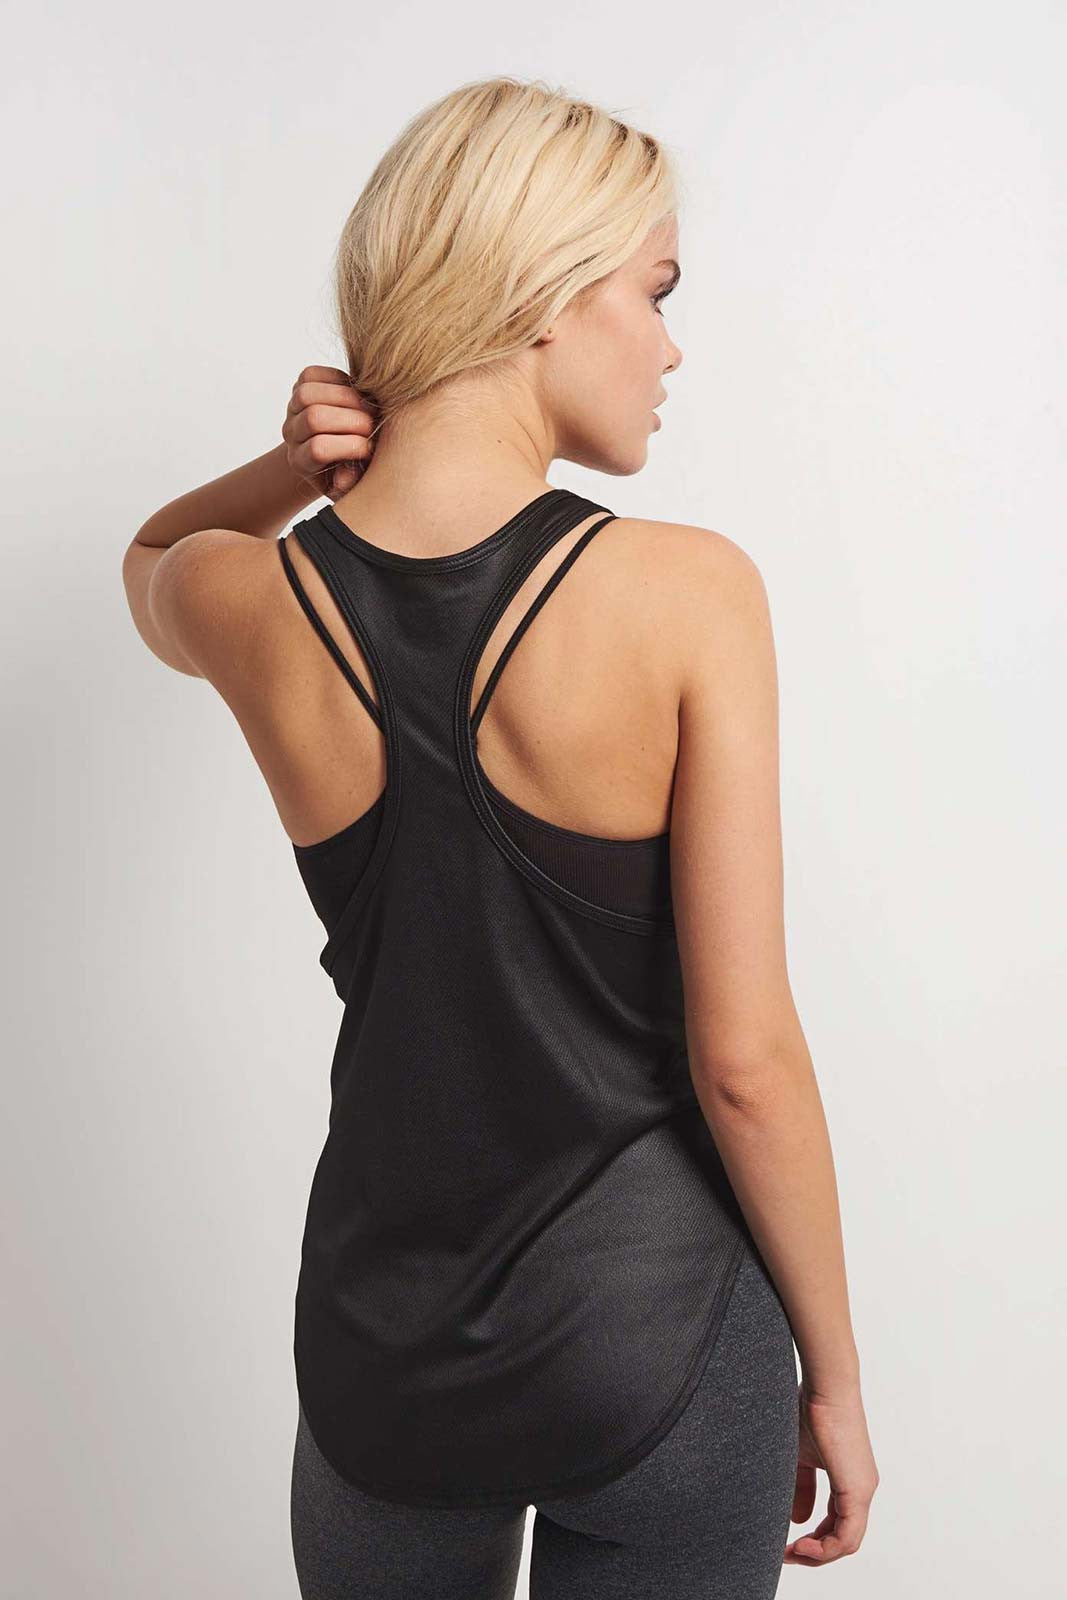 Splits59 Echo Tank Black image 2 - The Sports Edit